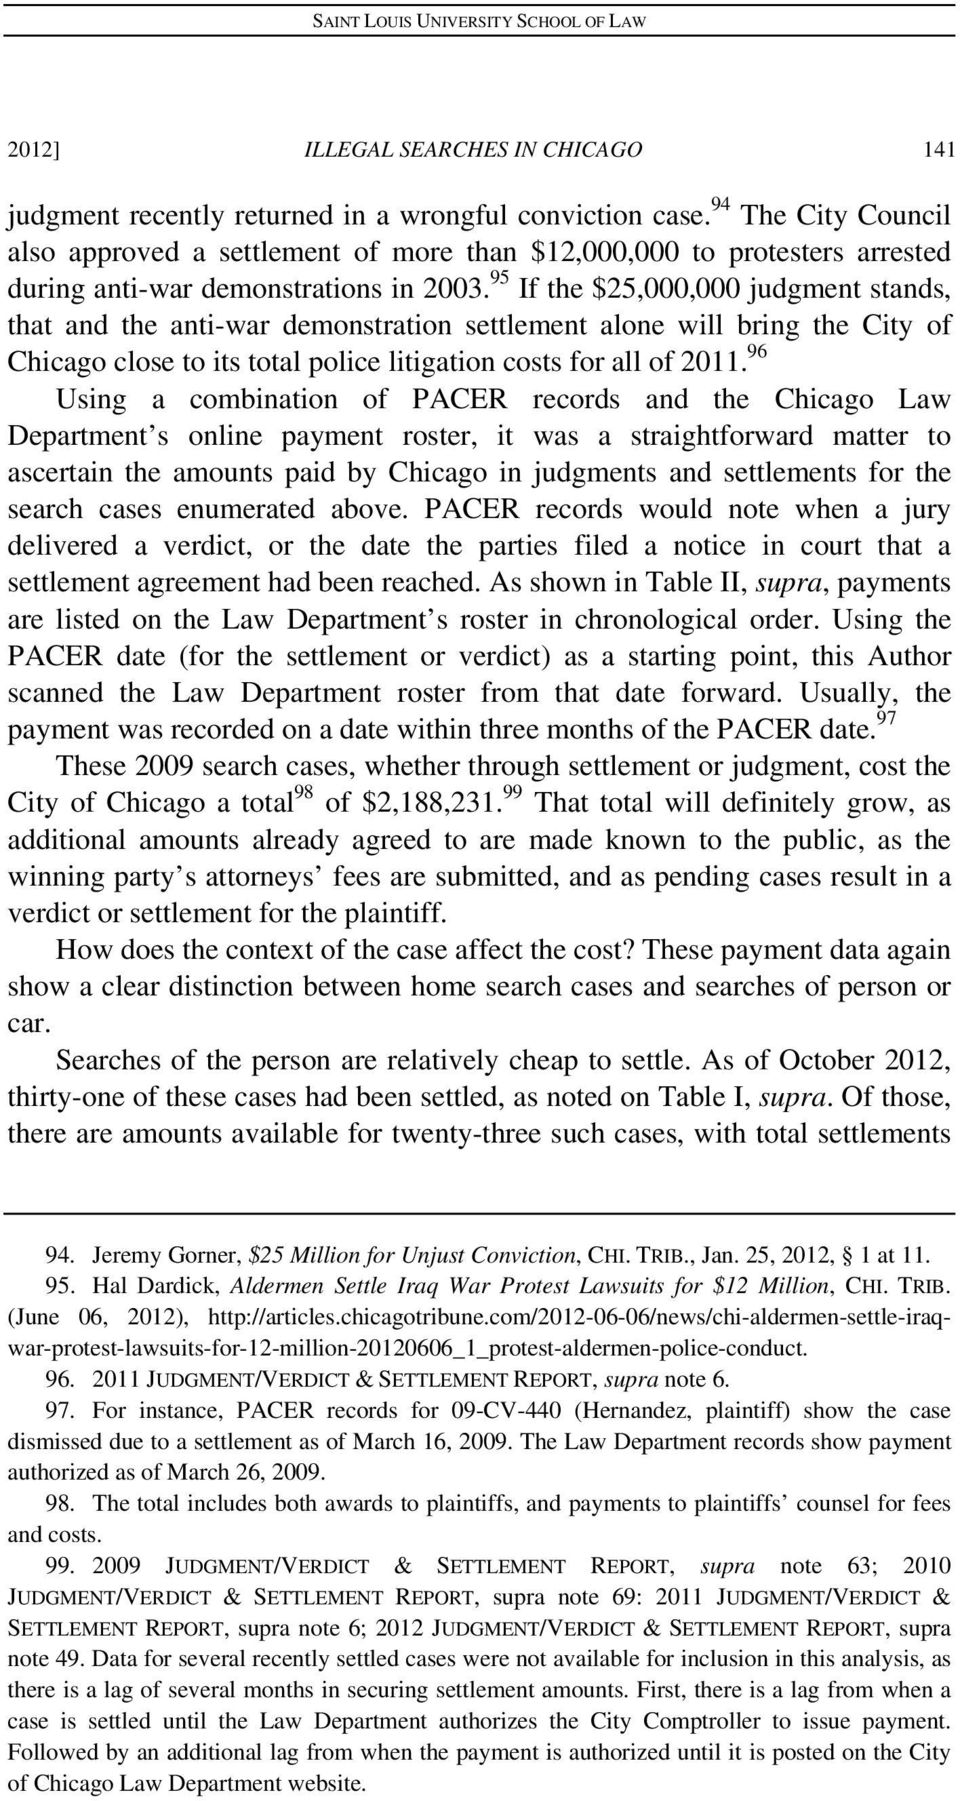 95 If the $25,000,000 judgment stands, that and the anti-war demonstration settlement alone will bring the City of Chicago close to its total police litigation costs for all of 2011.